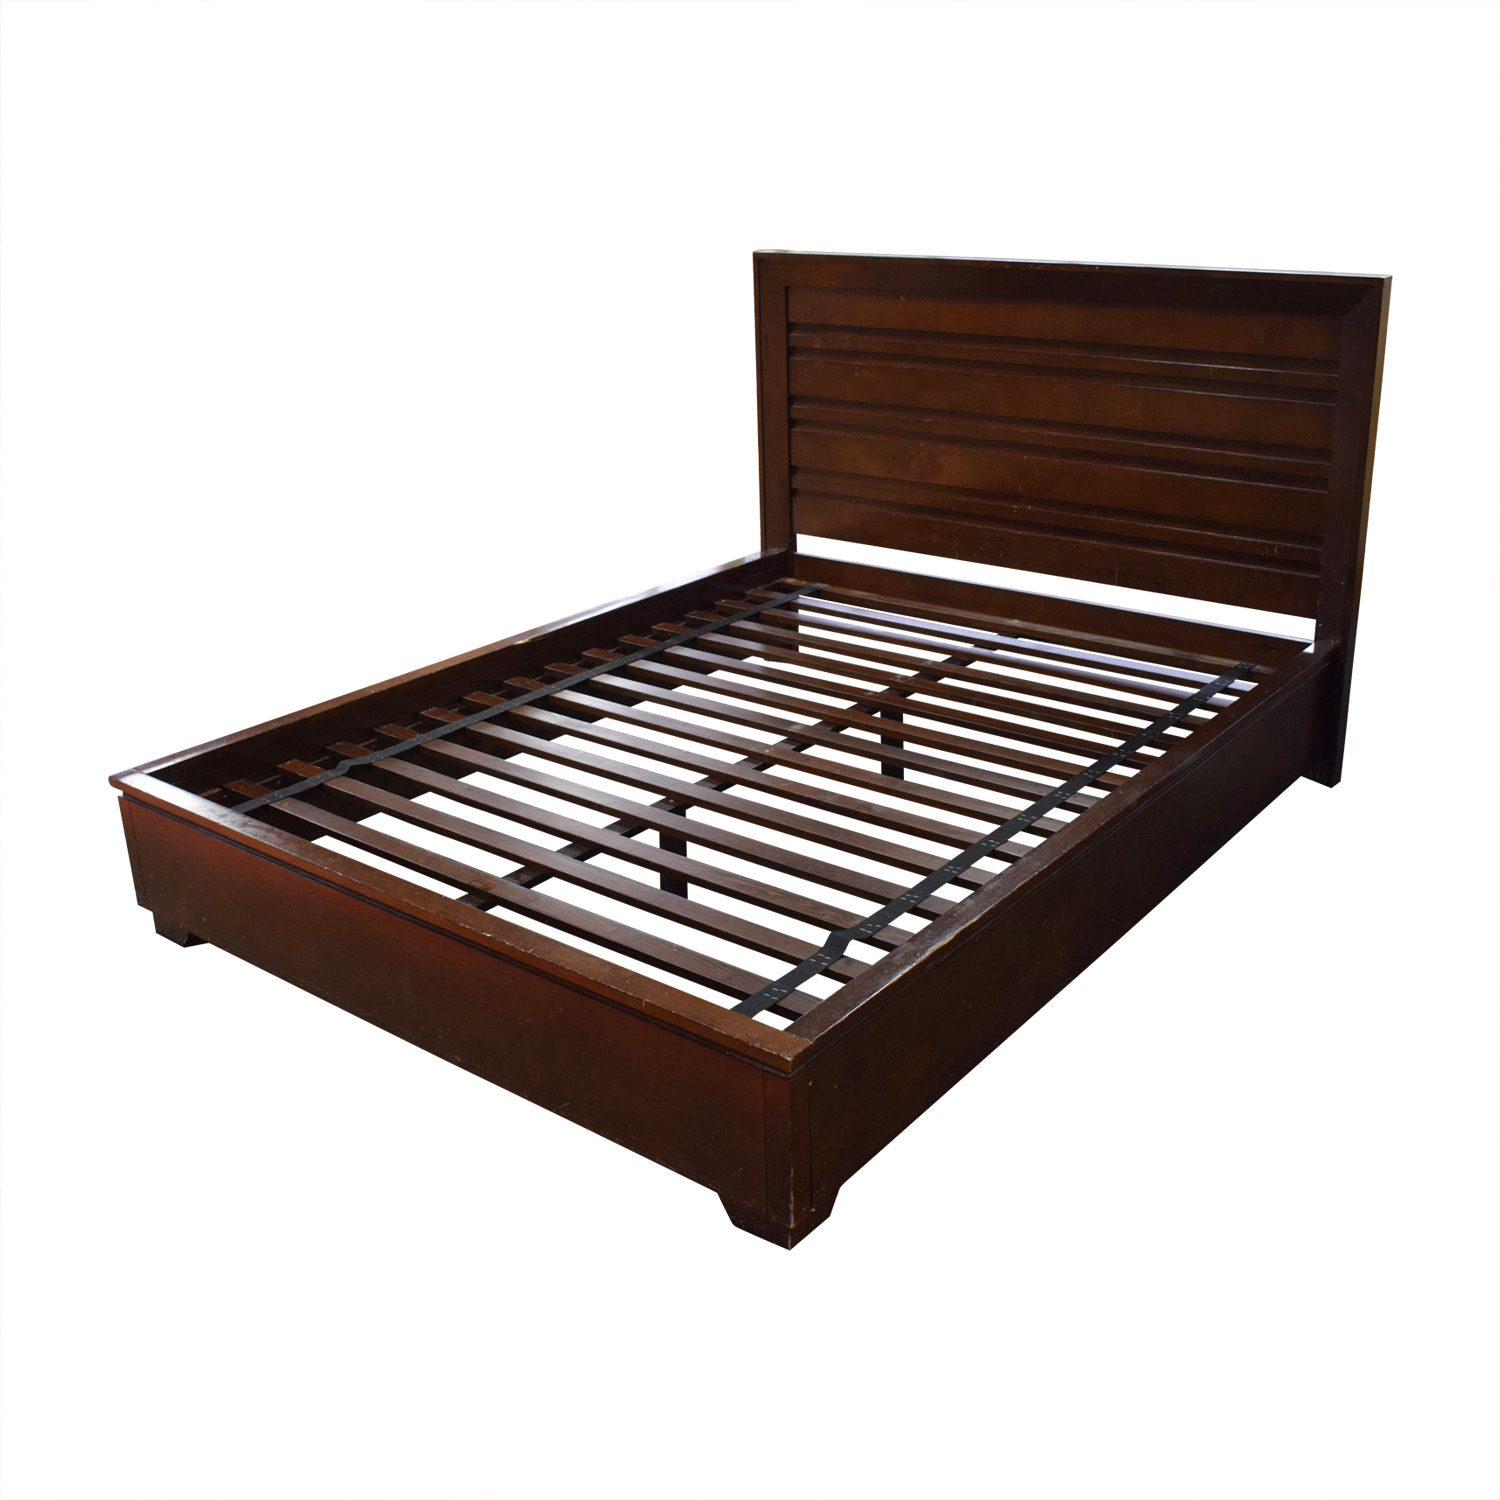 Crate & Barrel Crate & Barrel Queen Bed Frame Beds